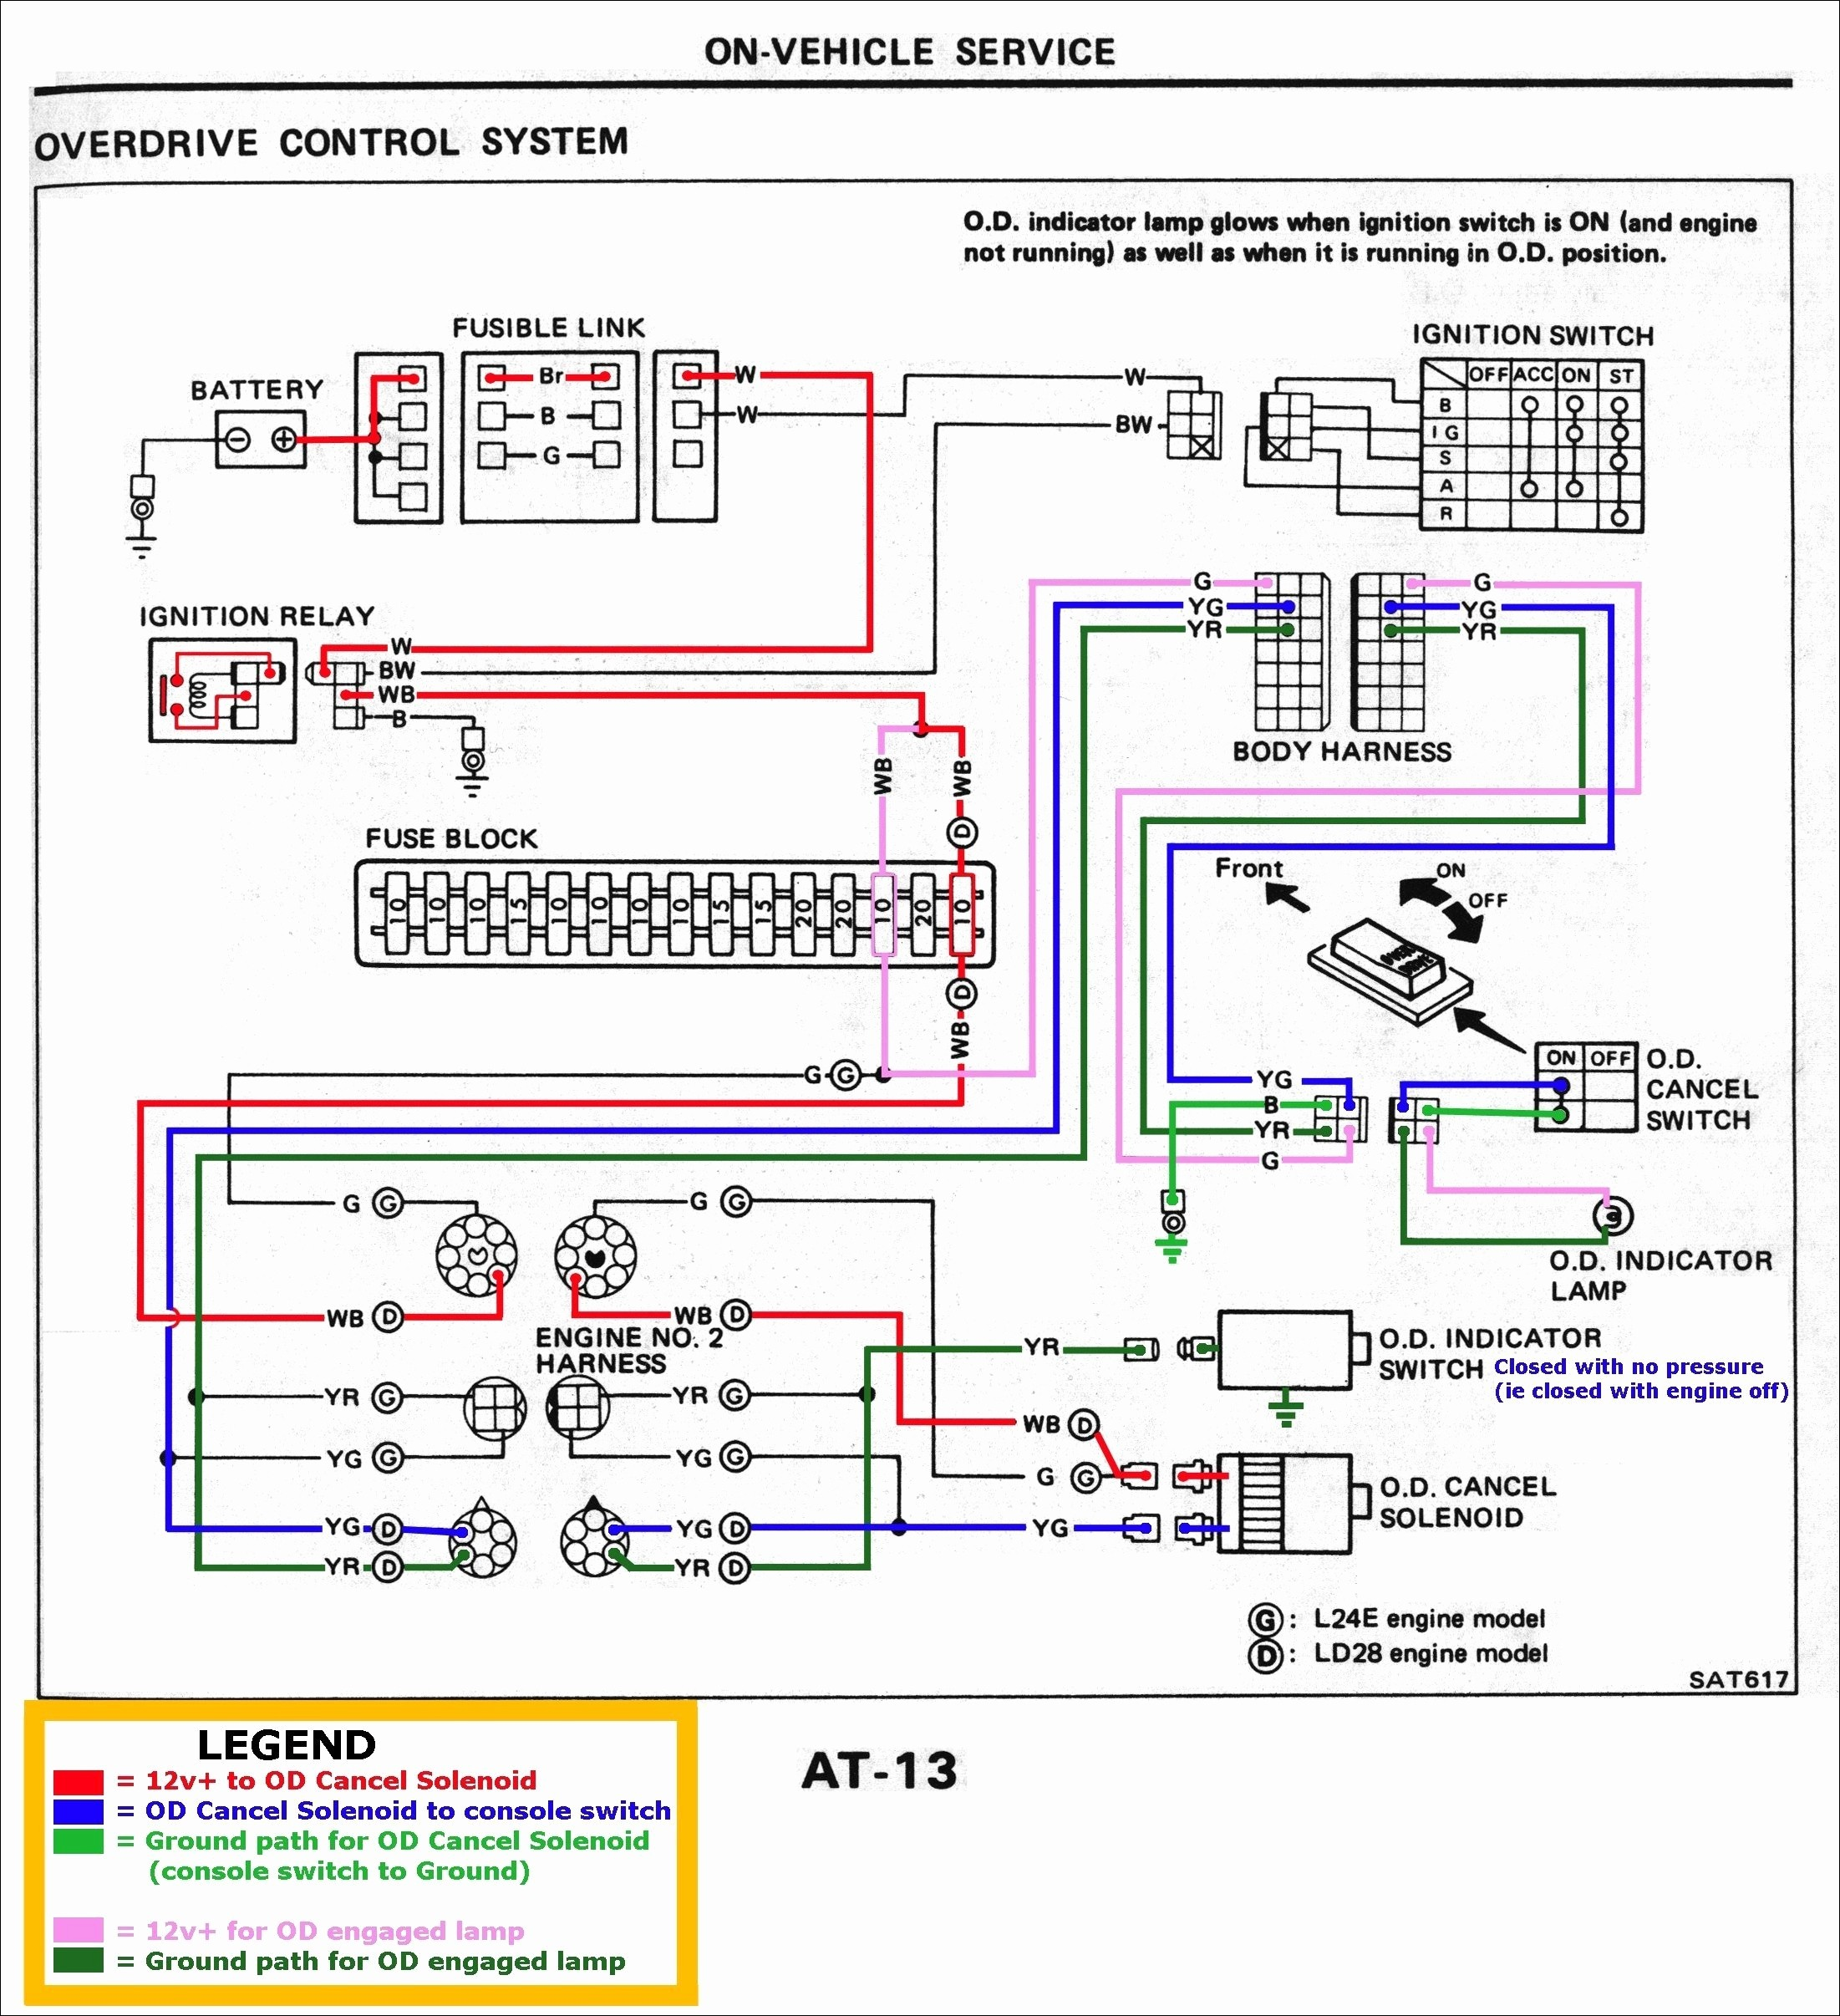 wiring diagram for 2001 oldsmobile alero box wiring diagram2001 oldsmobile aurora wiring harness wiring diagram library 2002 oldsmobile alero wiring diagram oldsmobile alero